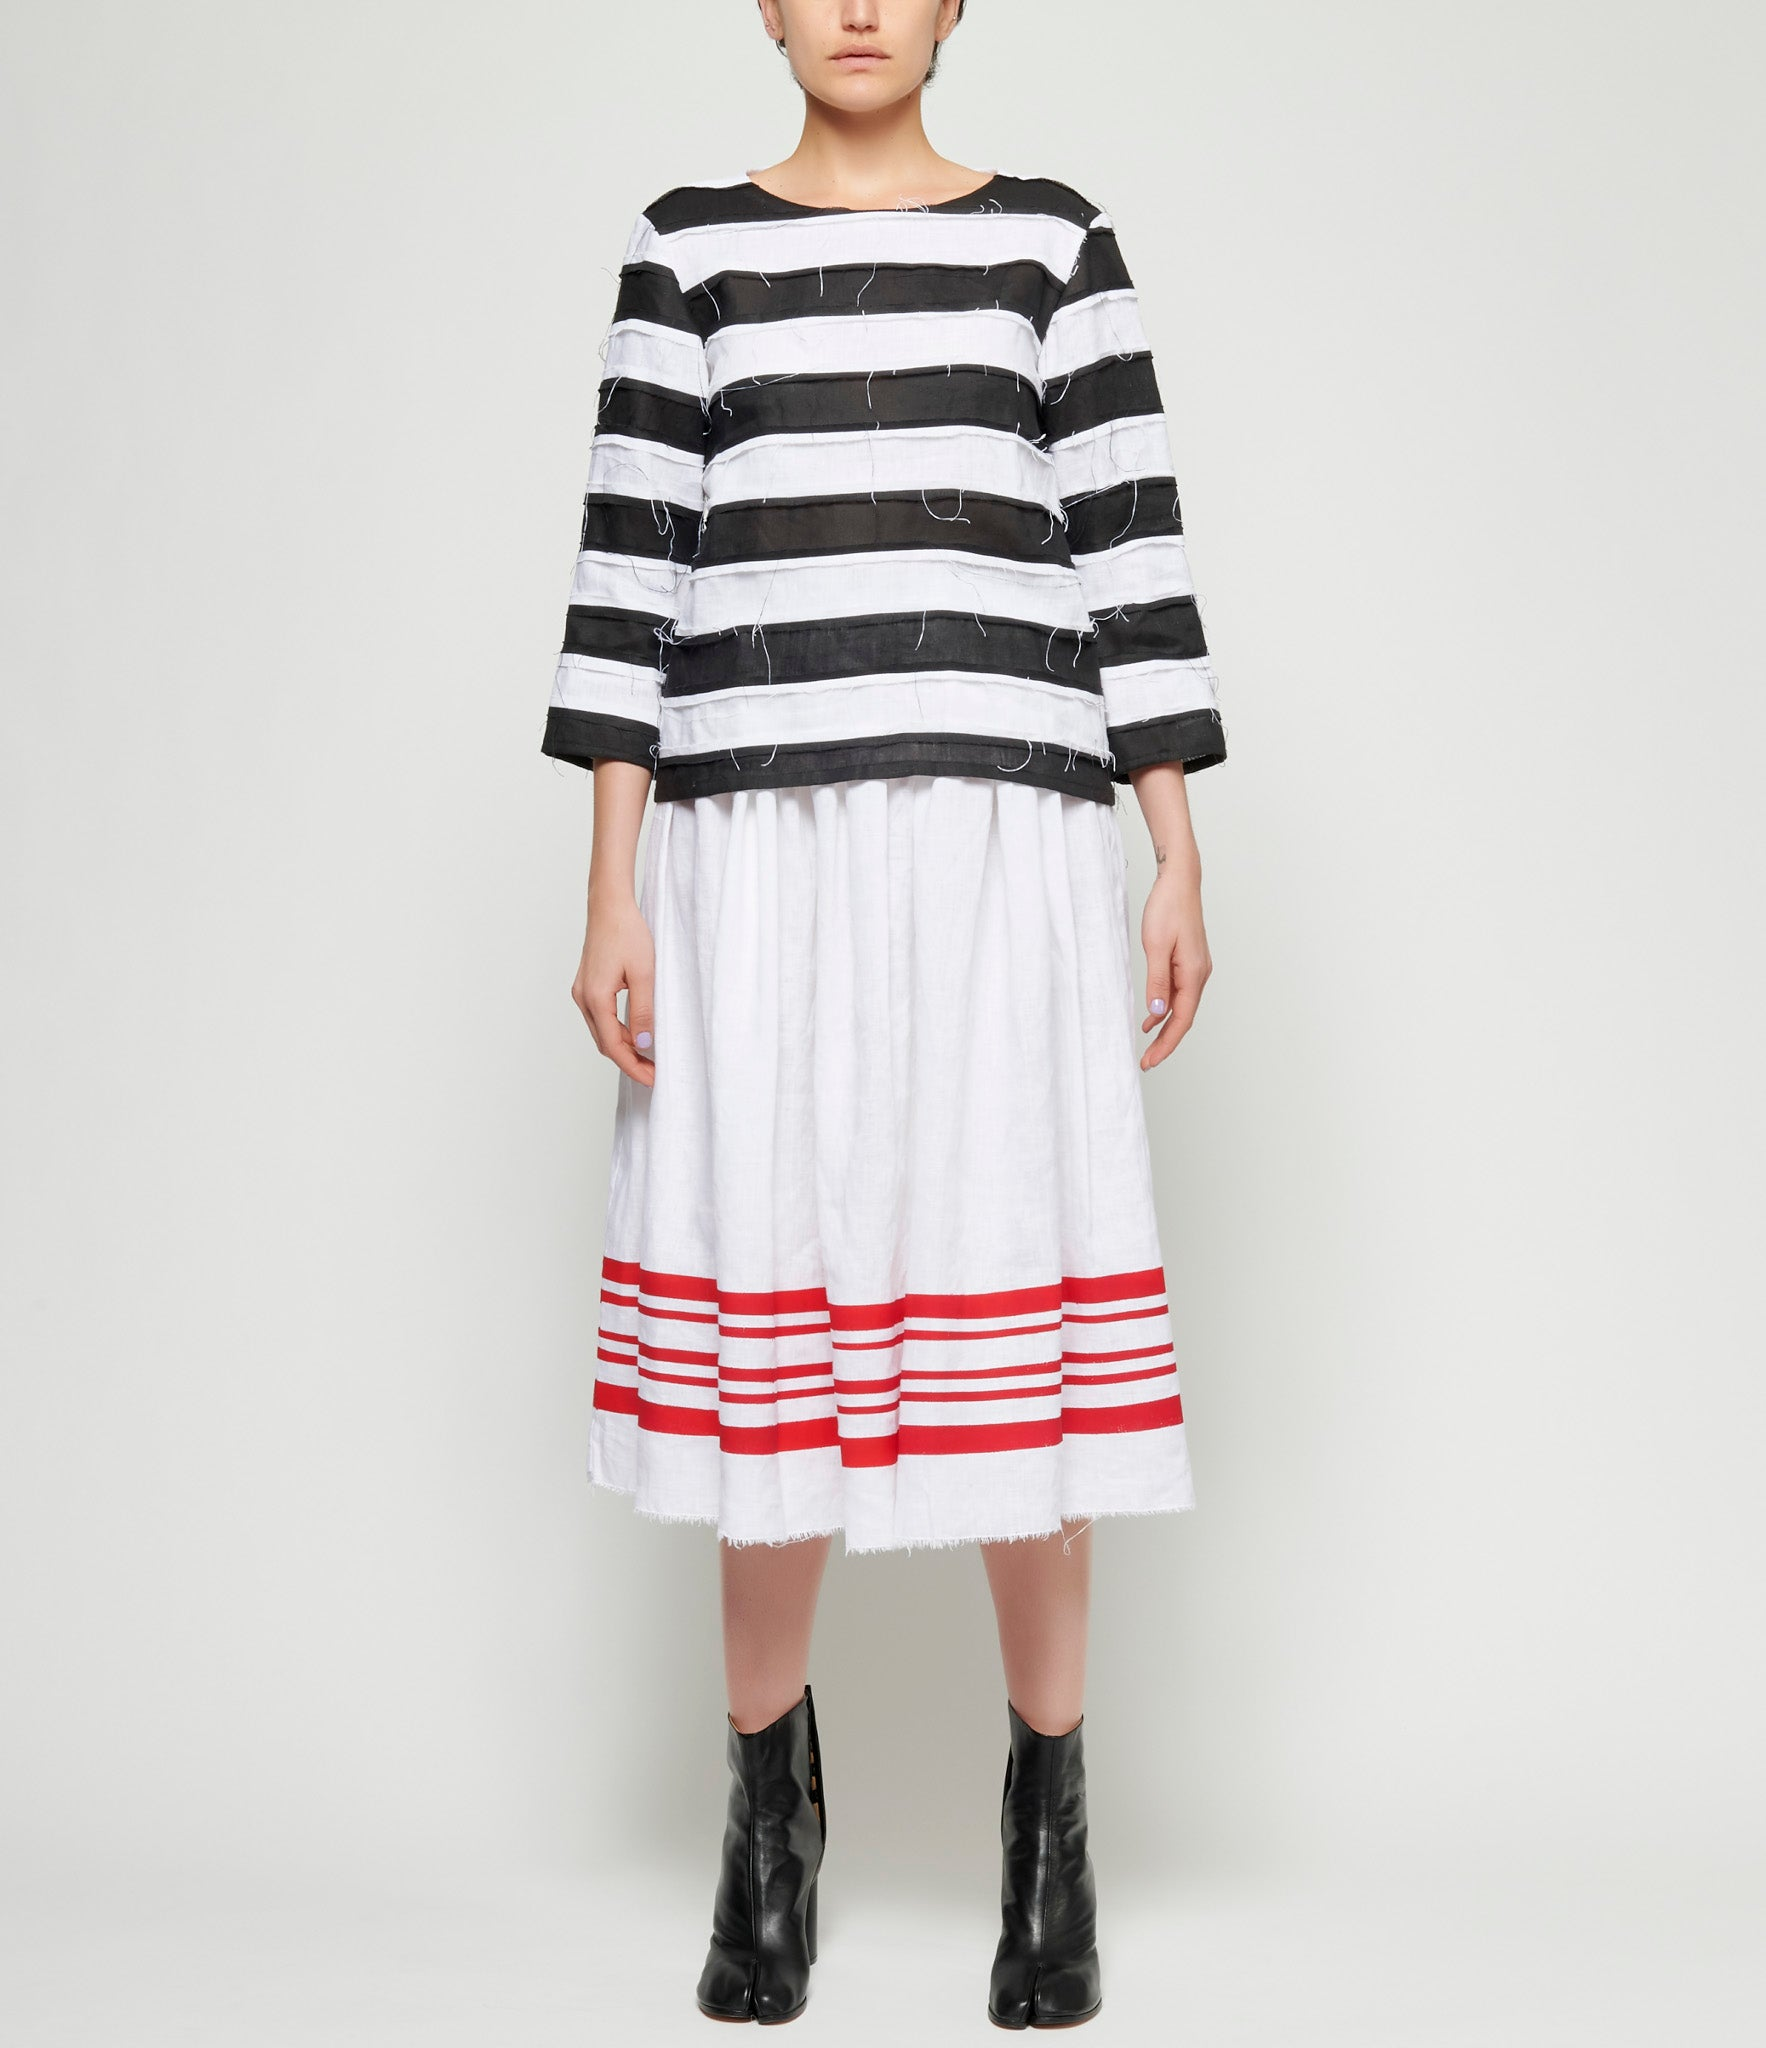 Maria Turri Striped Top